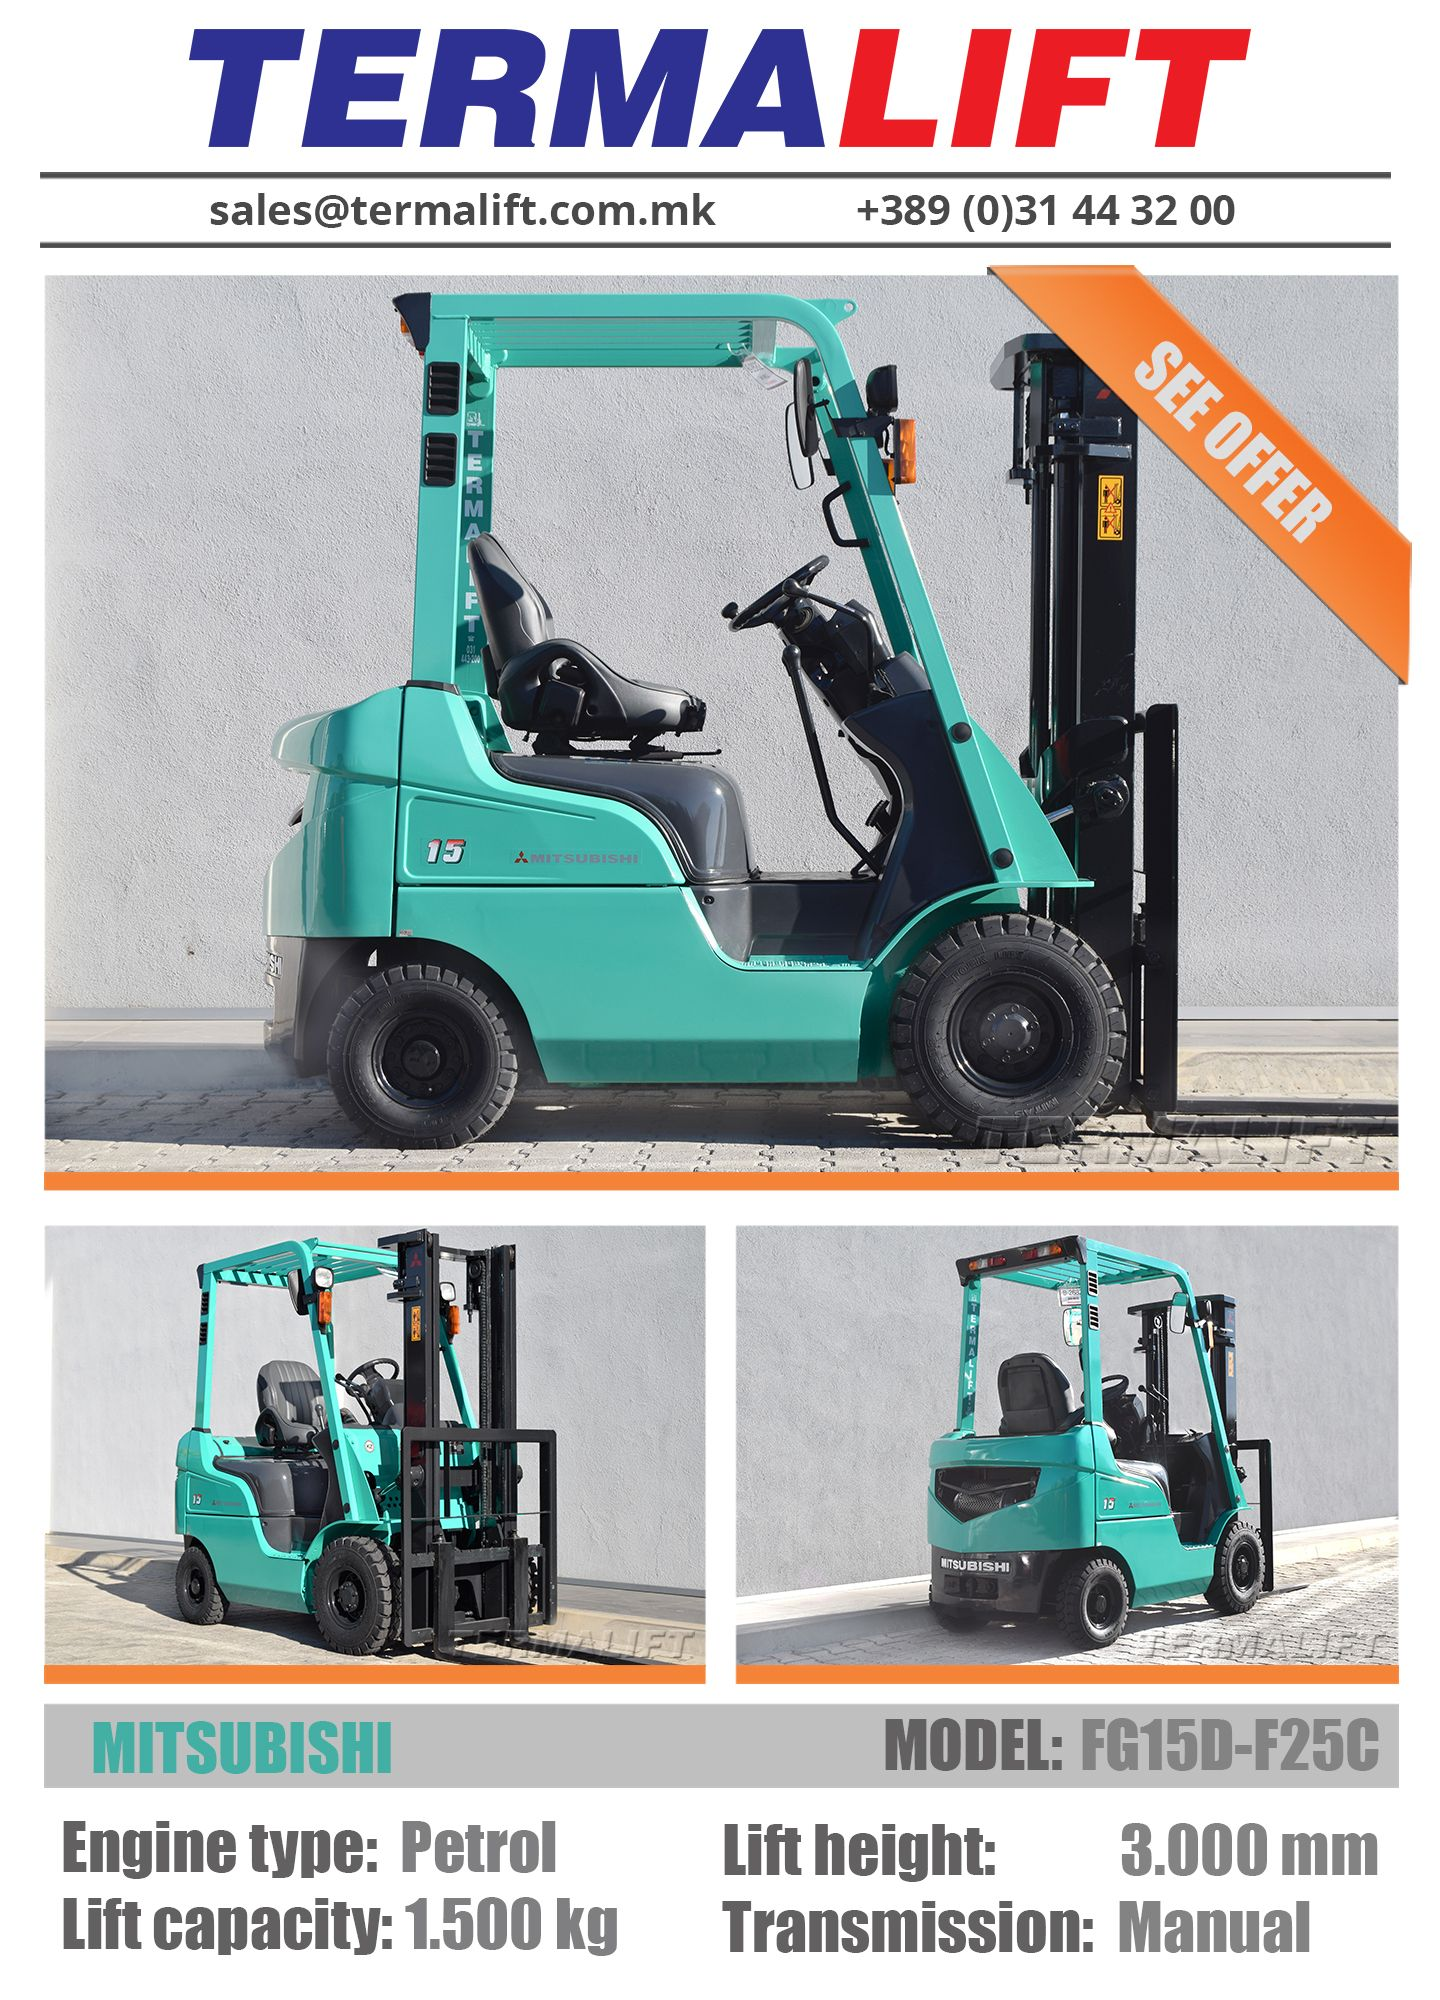 Mitsubishi Forklift For Sale Model Fg15d F25c Engine Type Truck Transmissions Petrol Lift Capacity 1500 Kg Height 3000 Mm Transmission Automatic